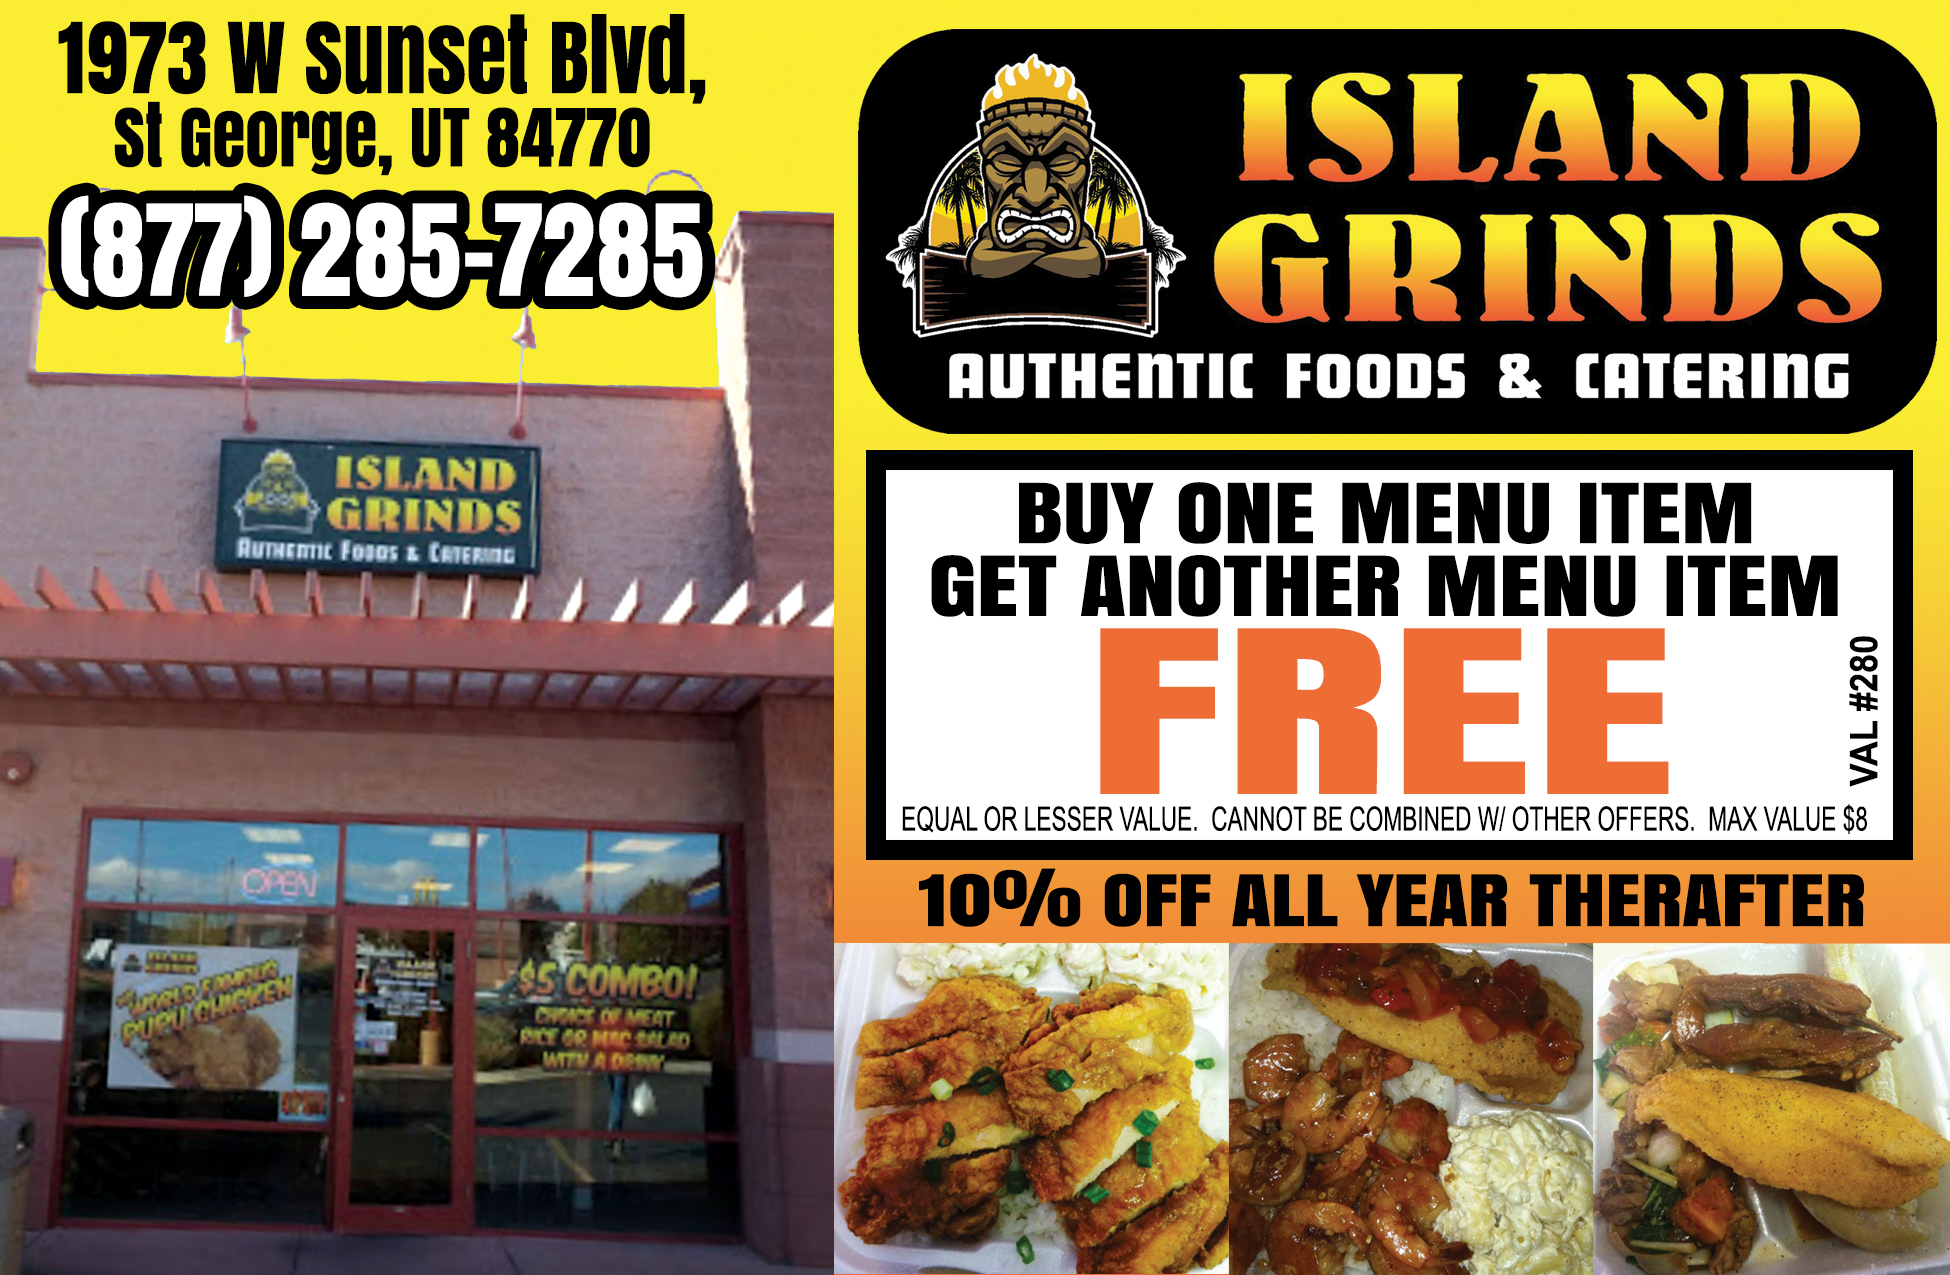 Island Grinds - authentic food and catering